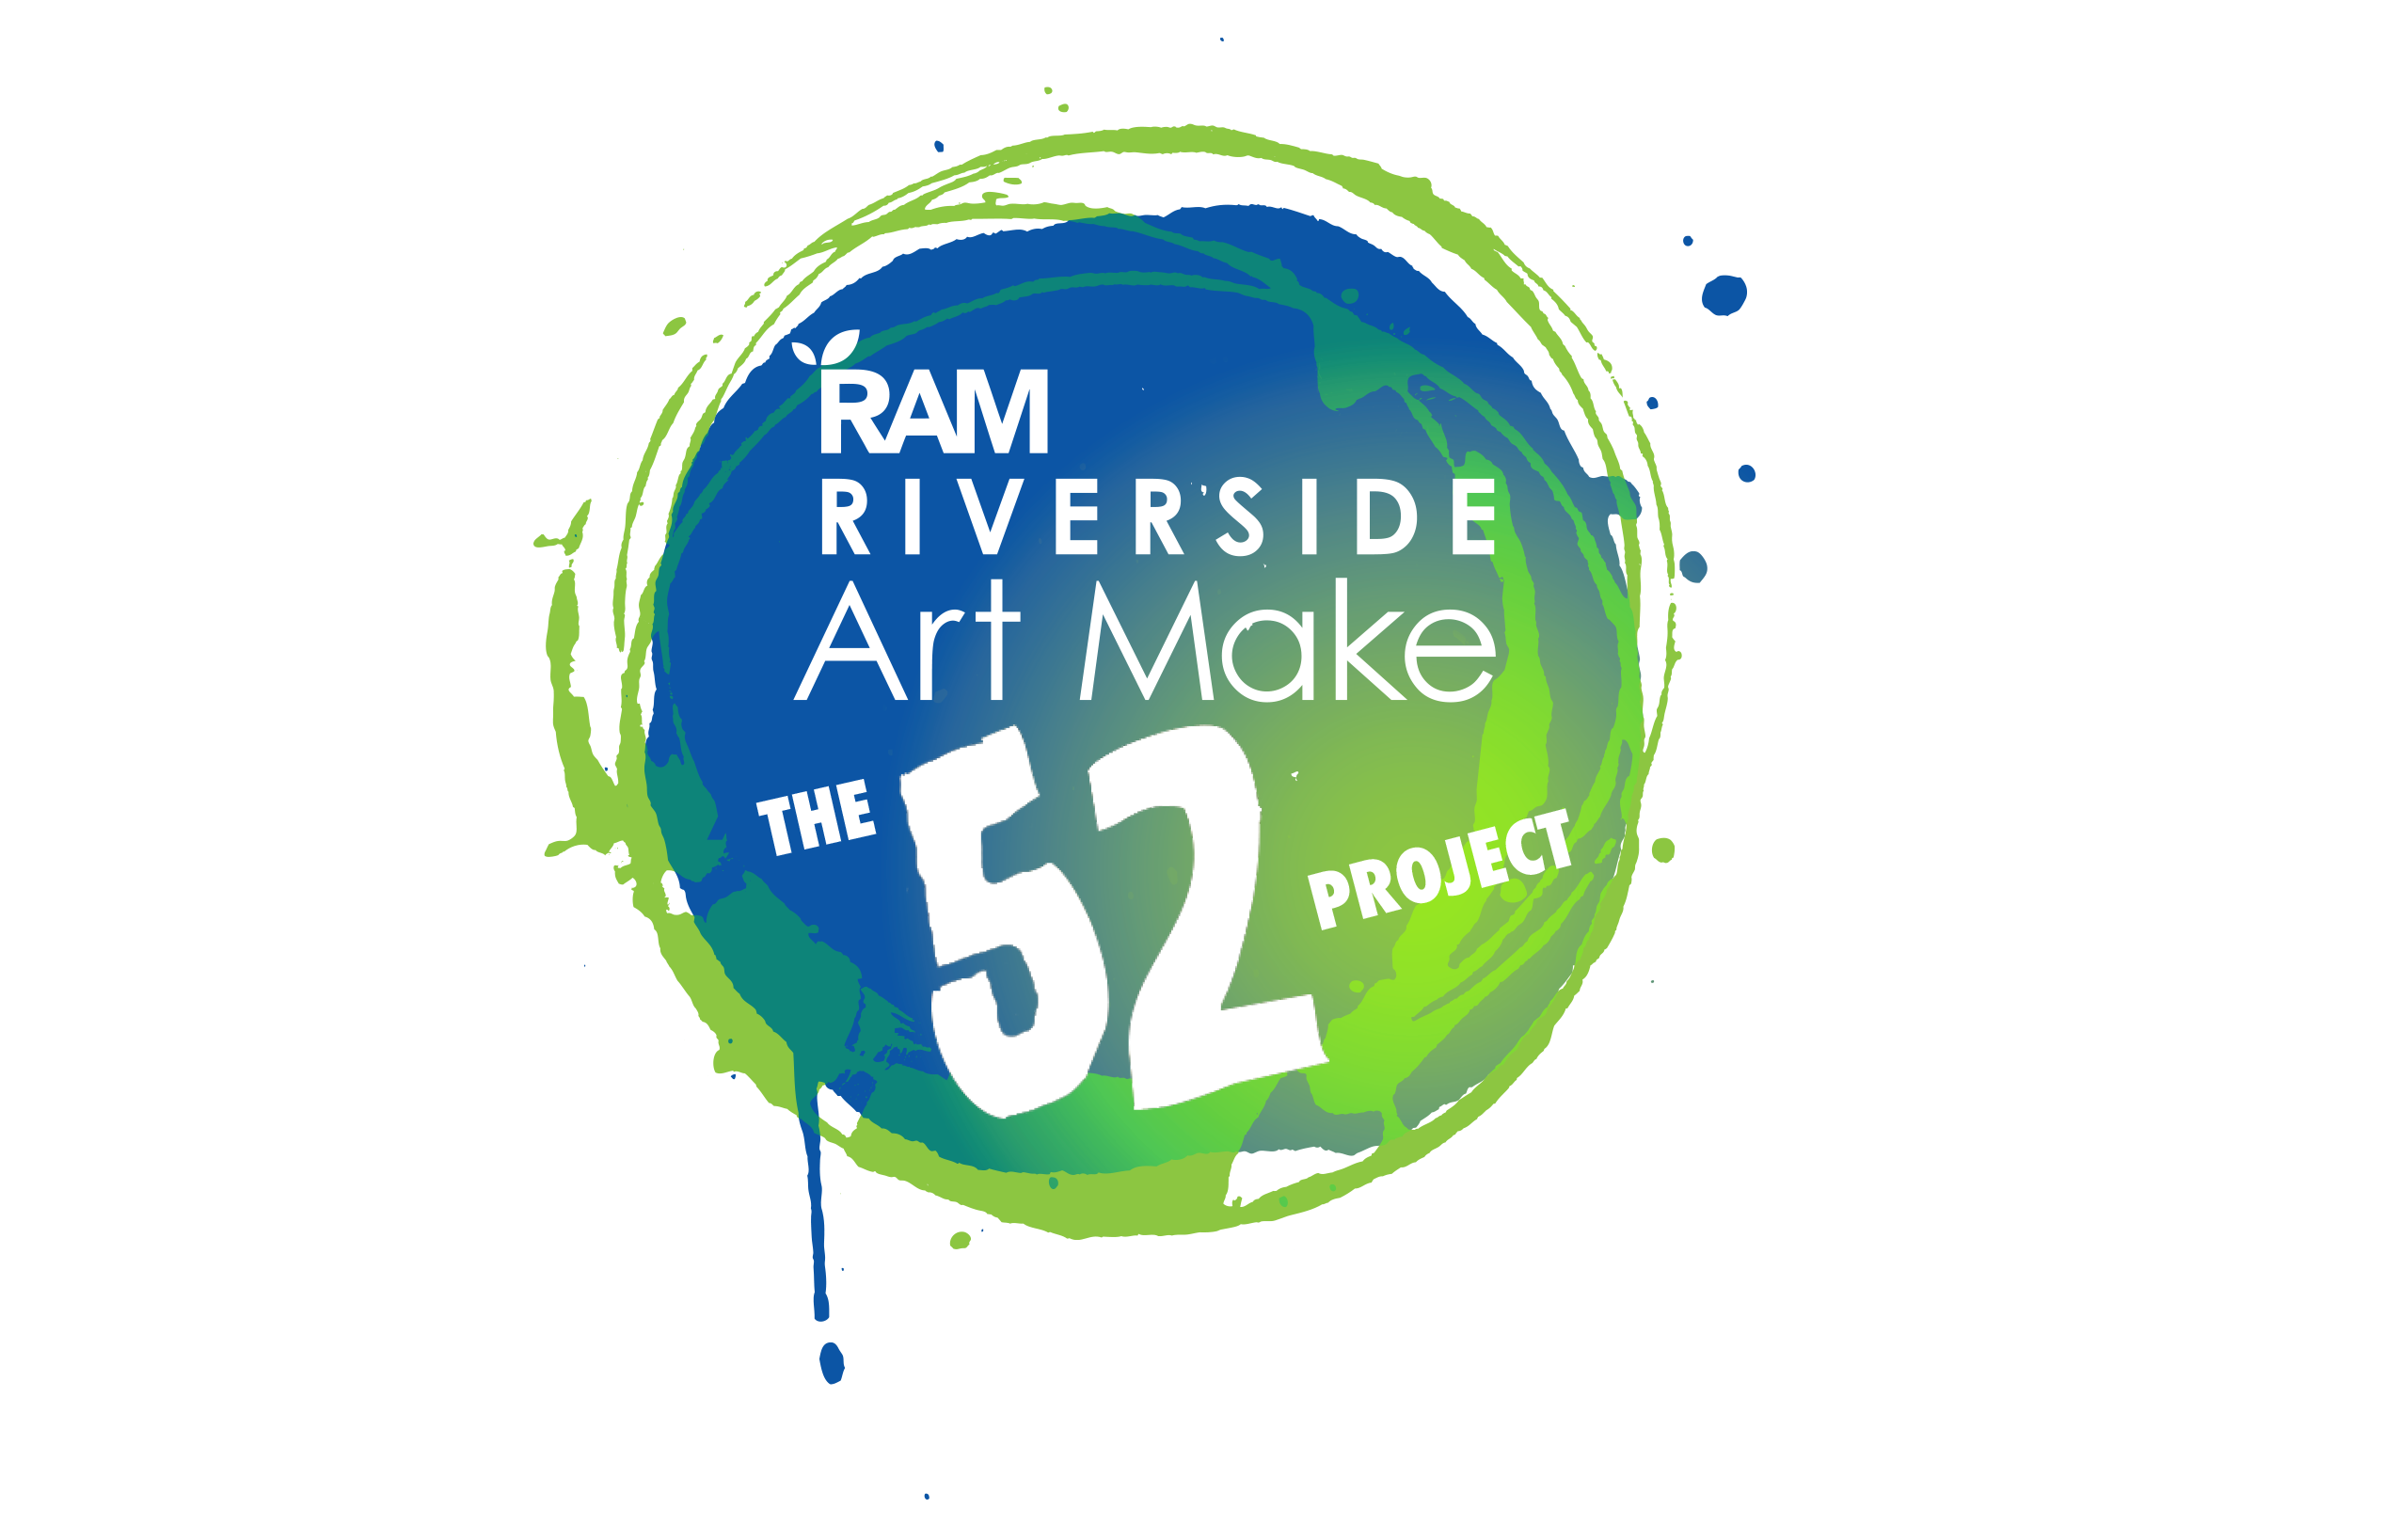 the 52 project LOGO